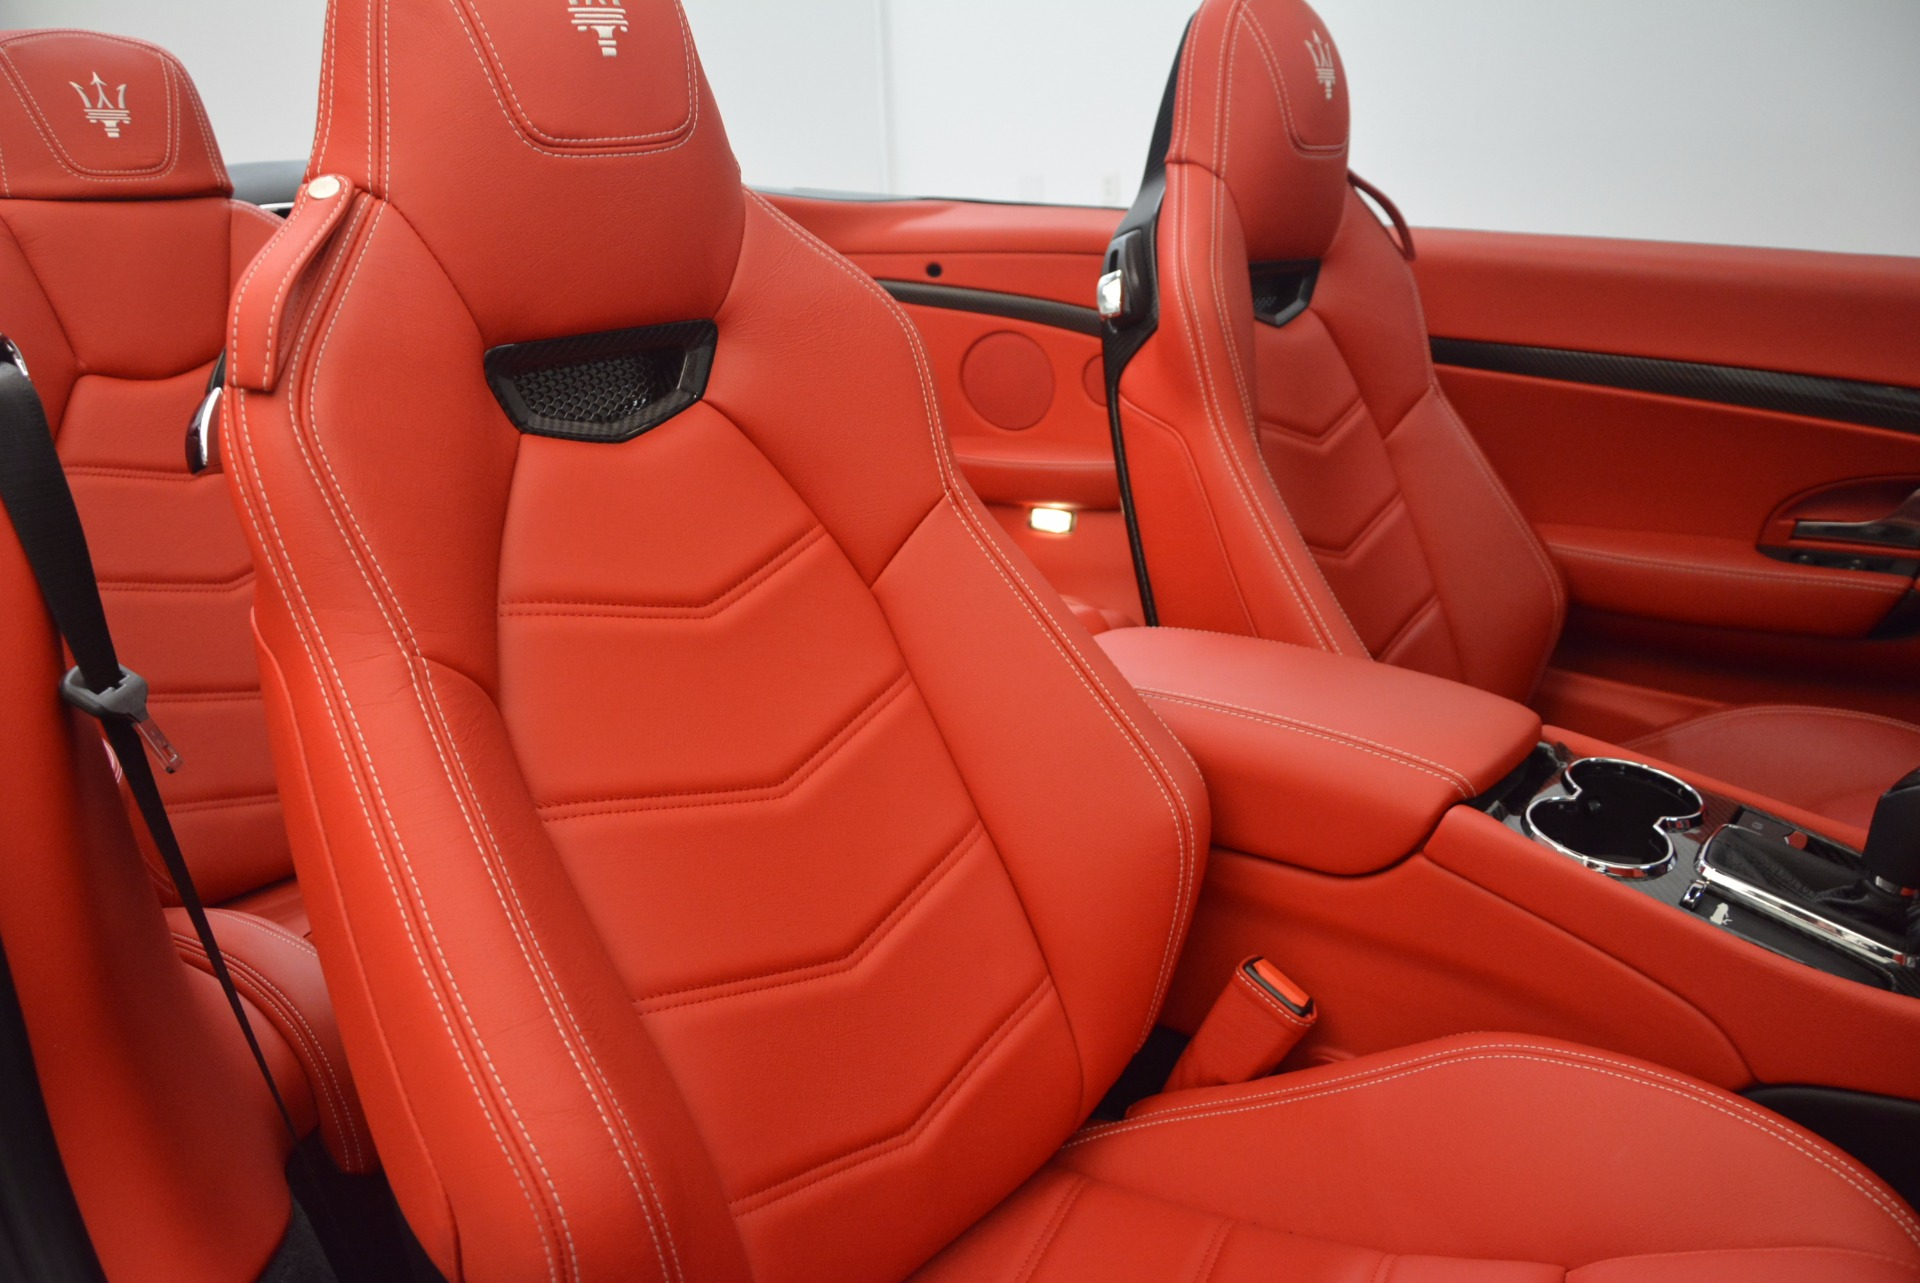 Used 2015 Maserati GranTurismo MC For Sale In Greenwich, CT. Alfa Romeo of Greenwich, 7193 1135_p34